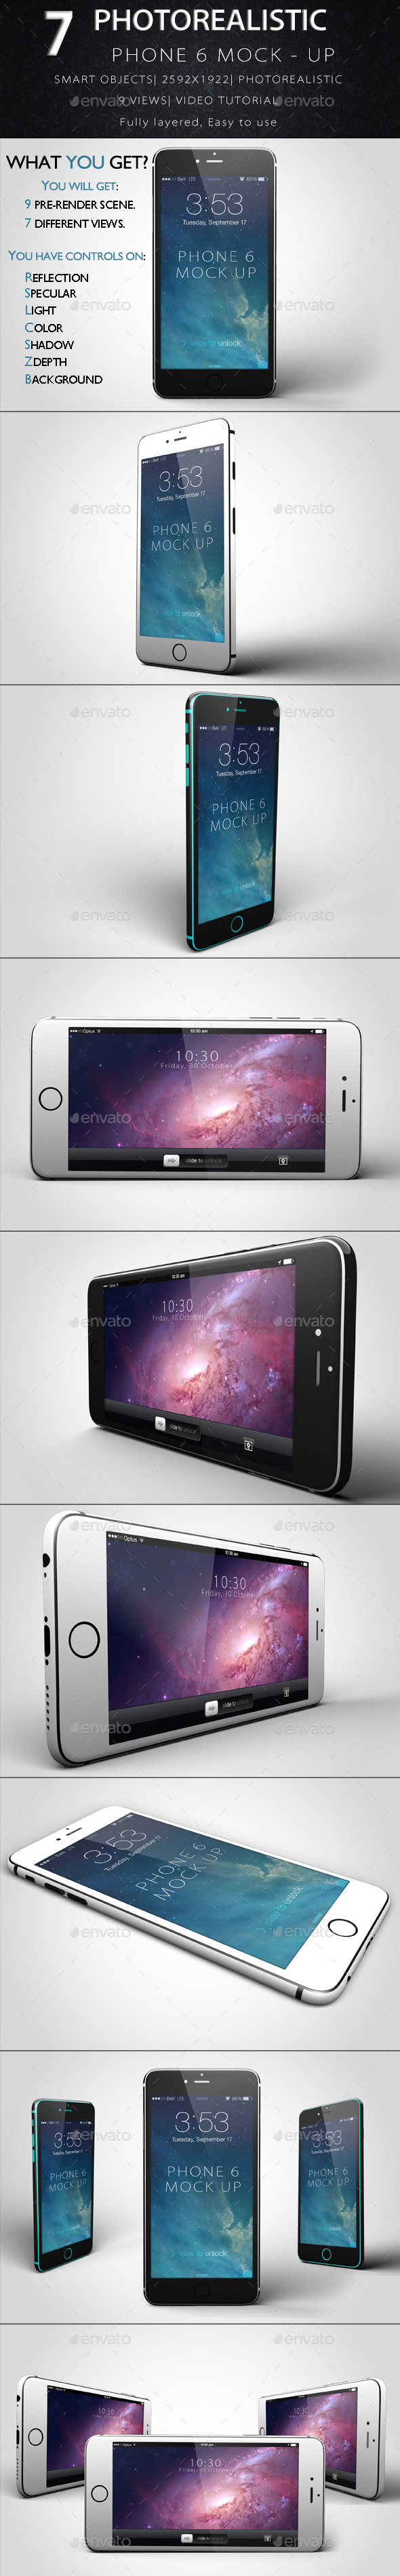 Phone 6 Mock-Up